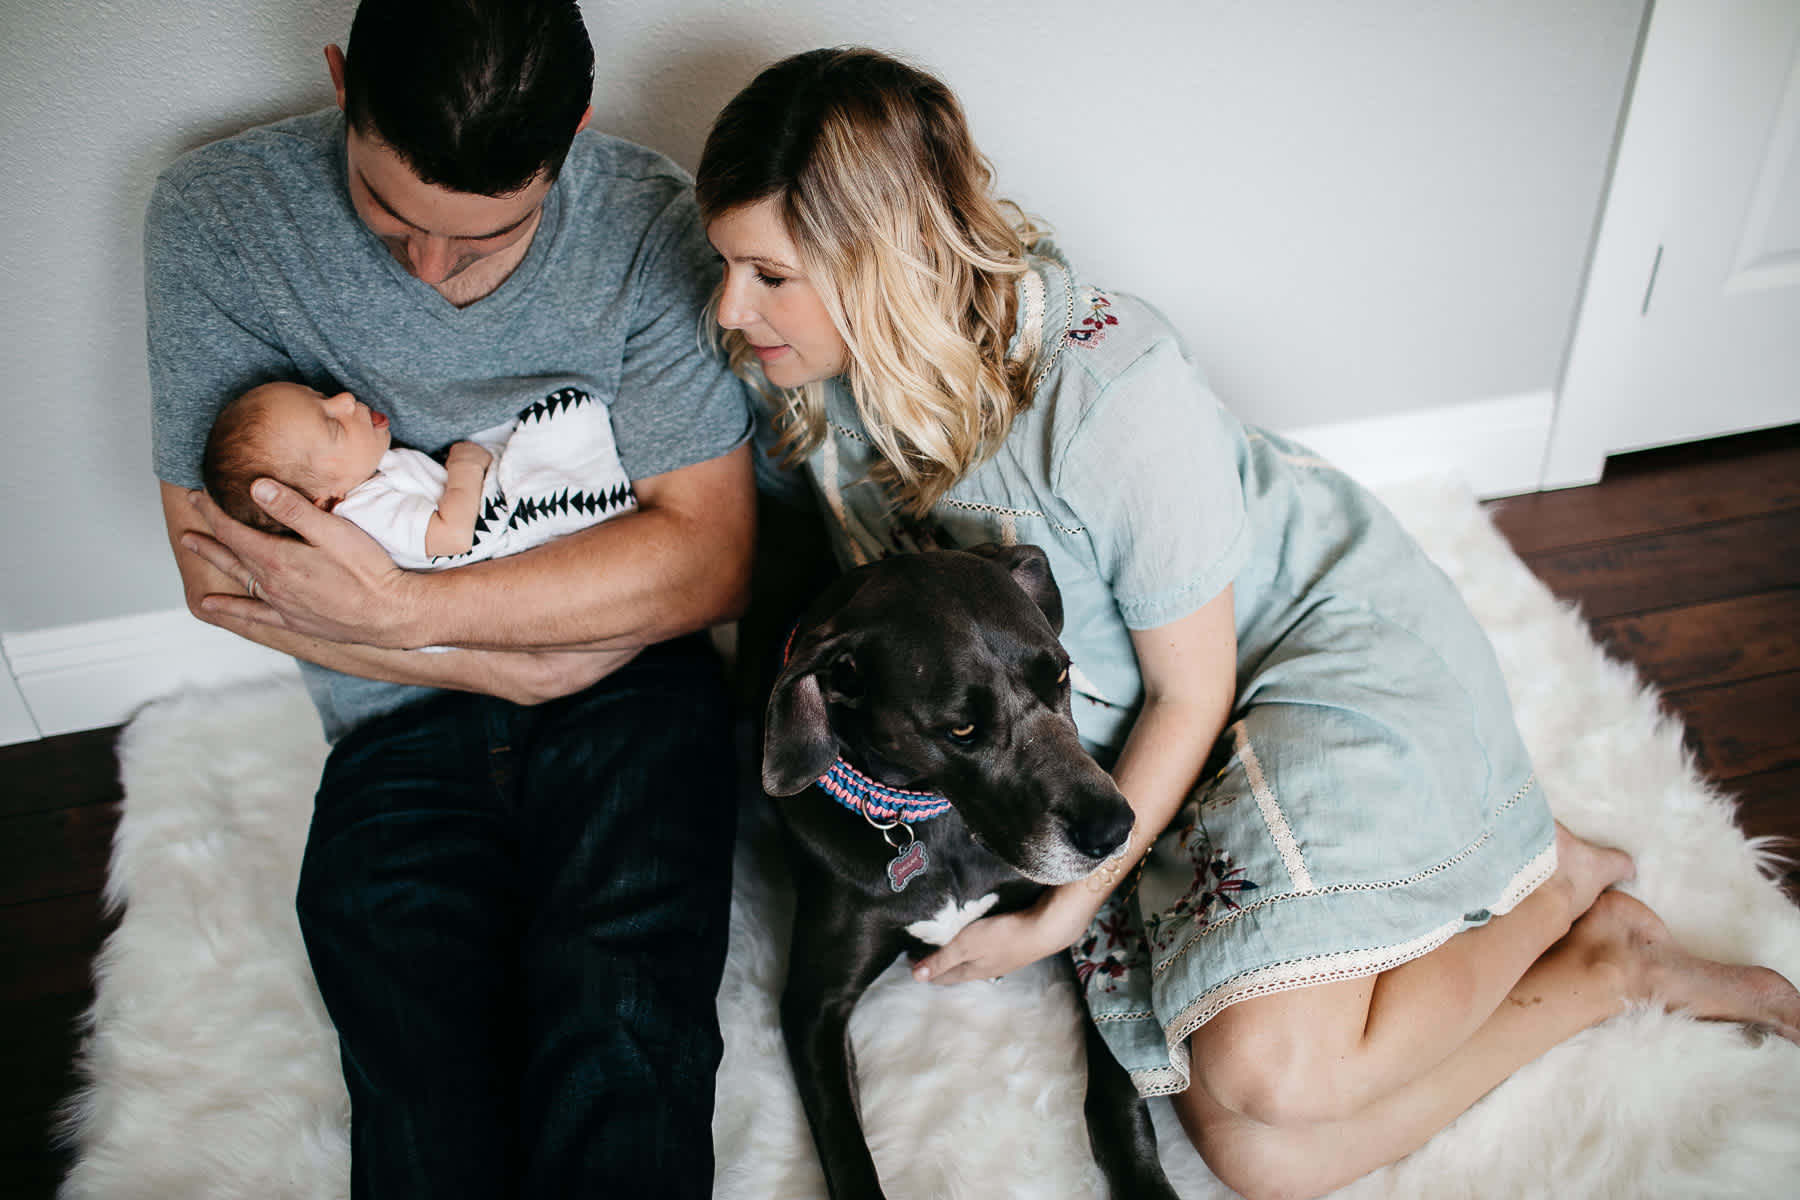 in-home-lifestyle-newborn-with-great-dane-dog-24